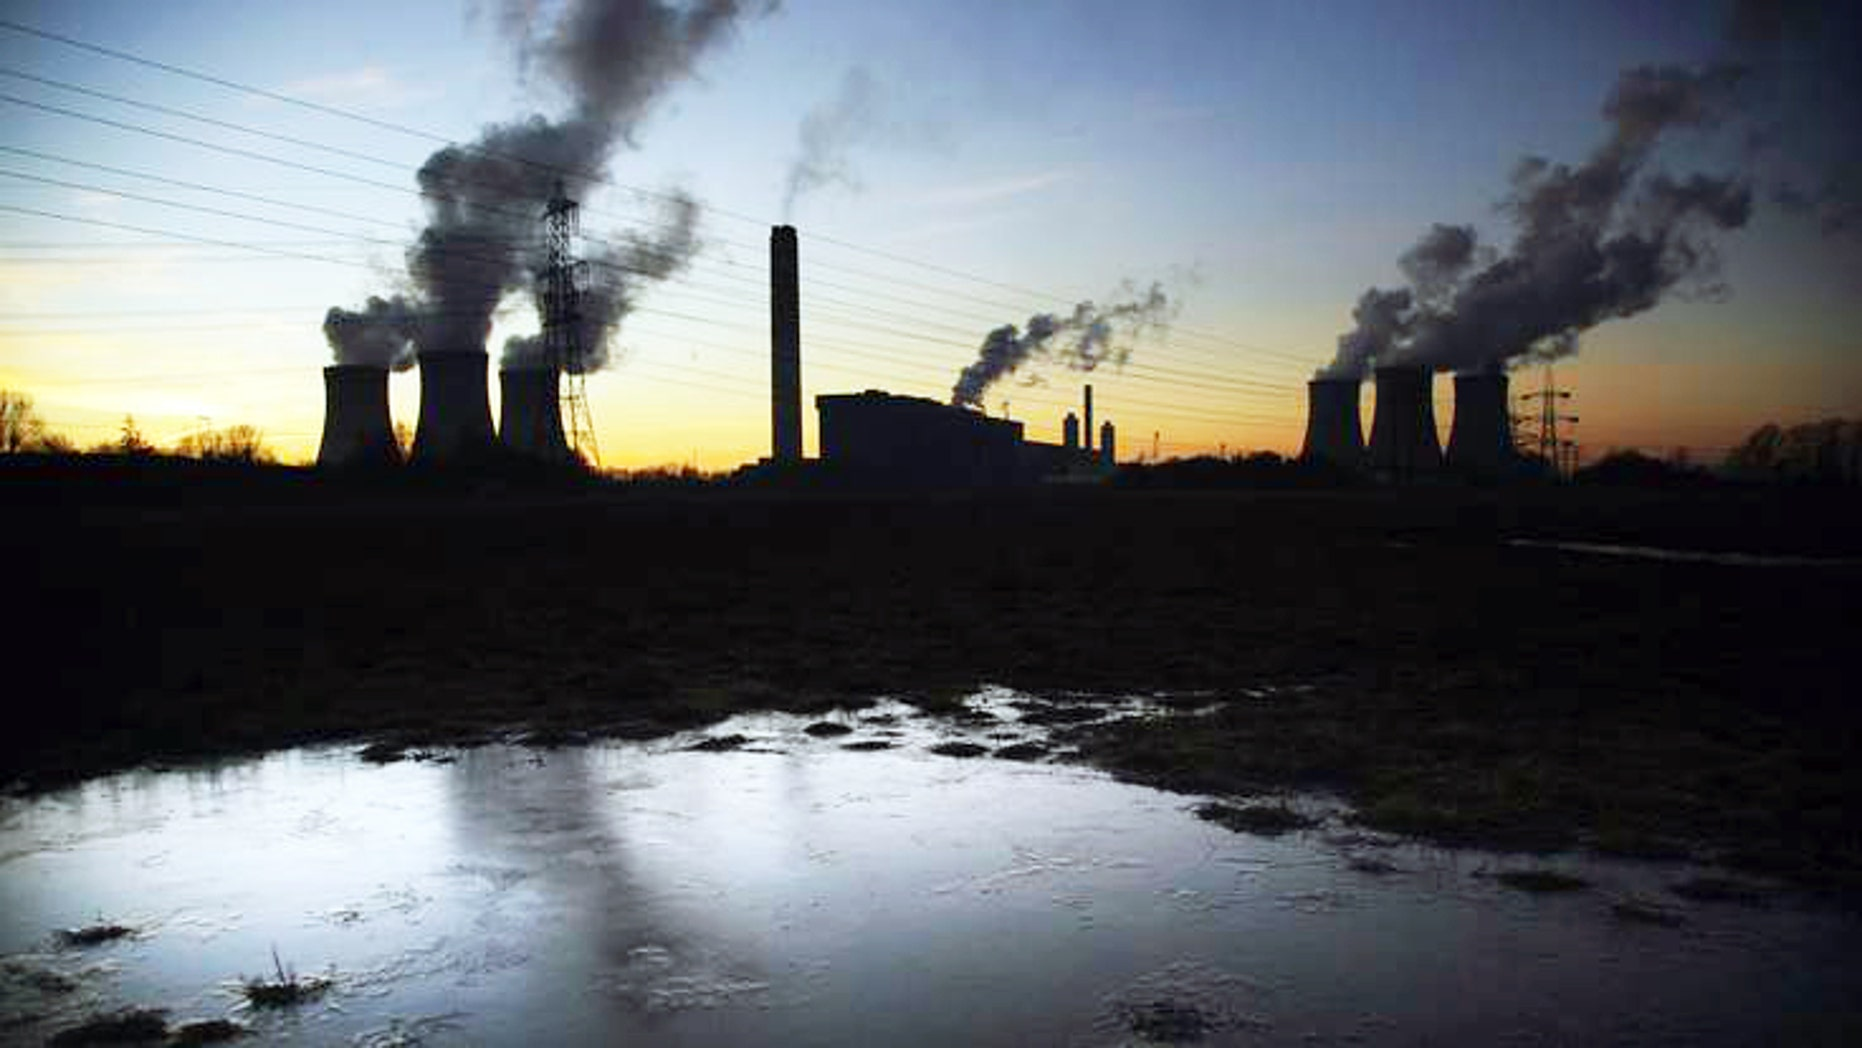 The Didcot power station in Oxfordshire, Britain. (Sky News)